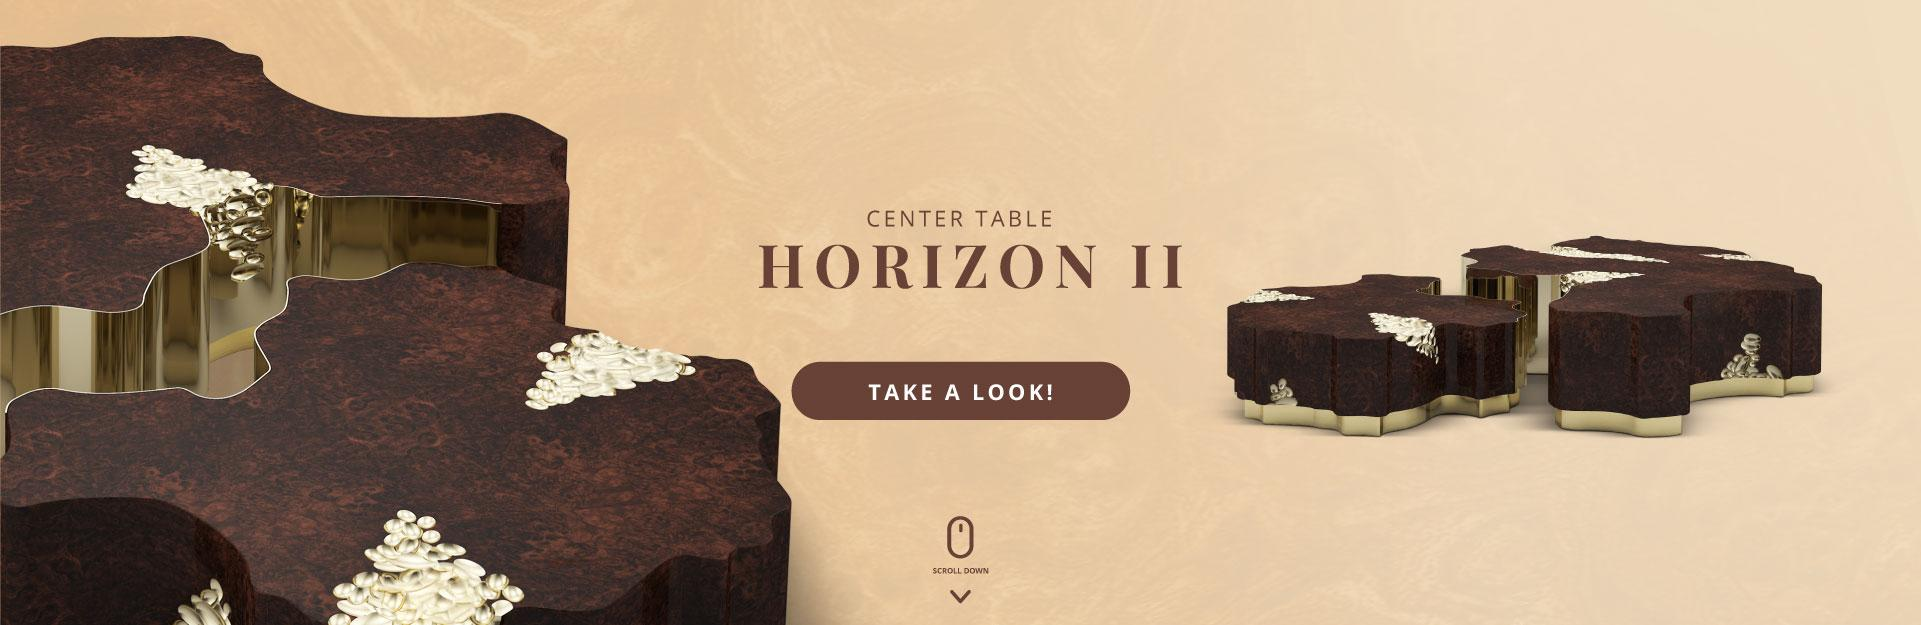 horizon-center-banner